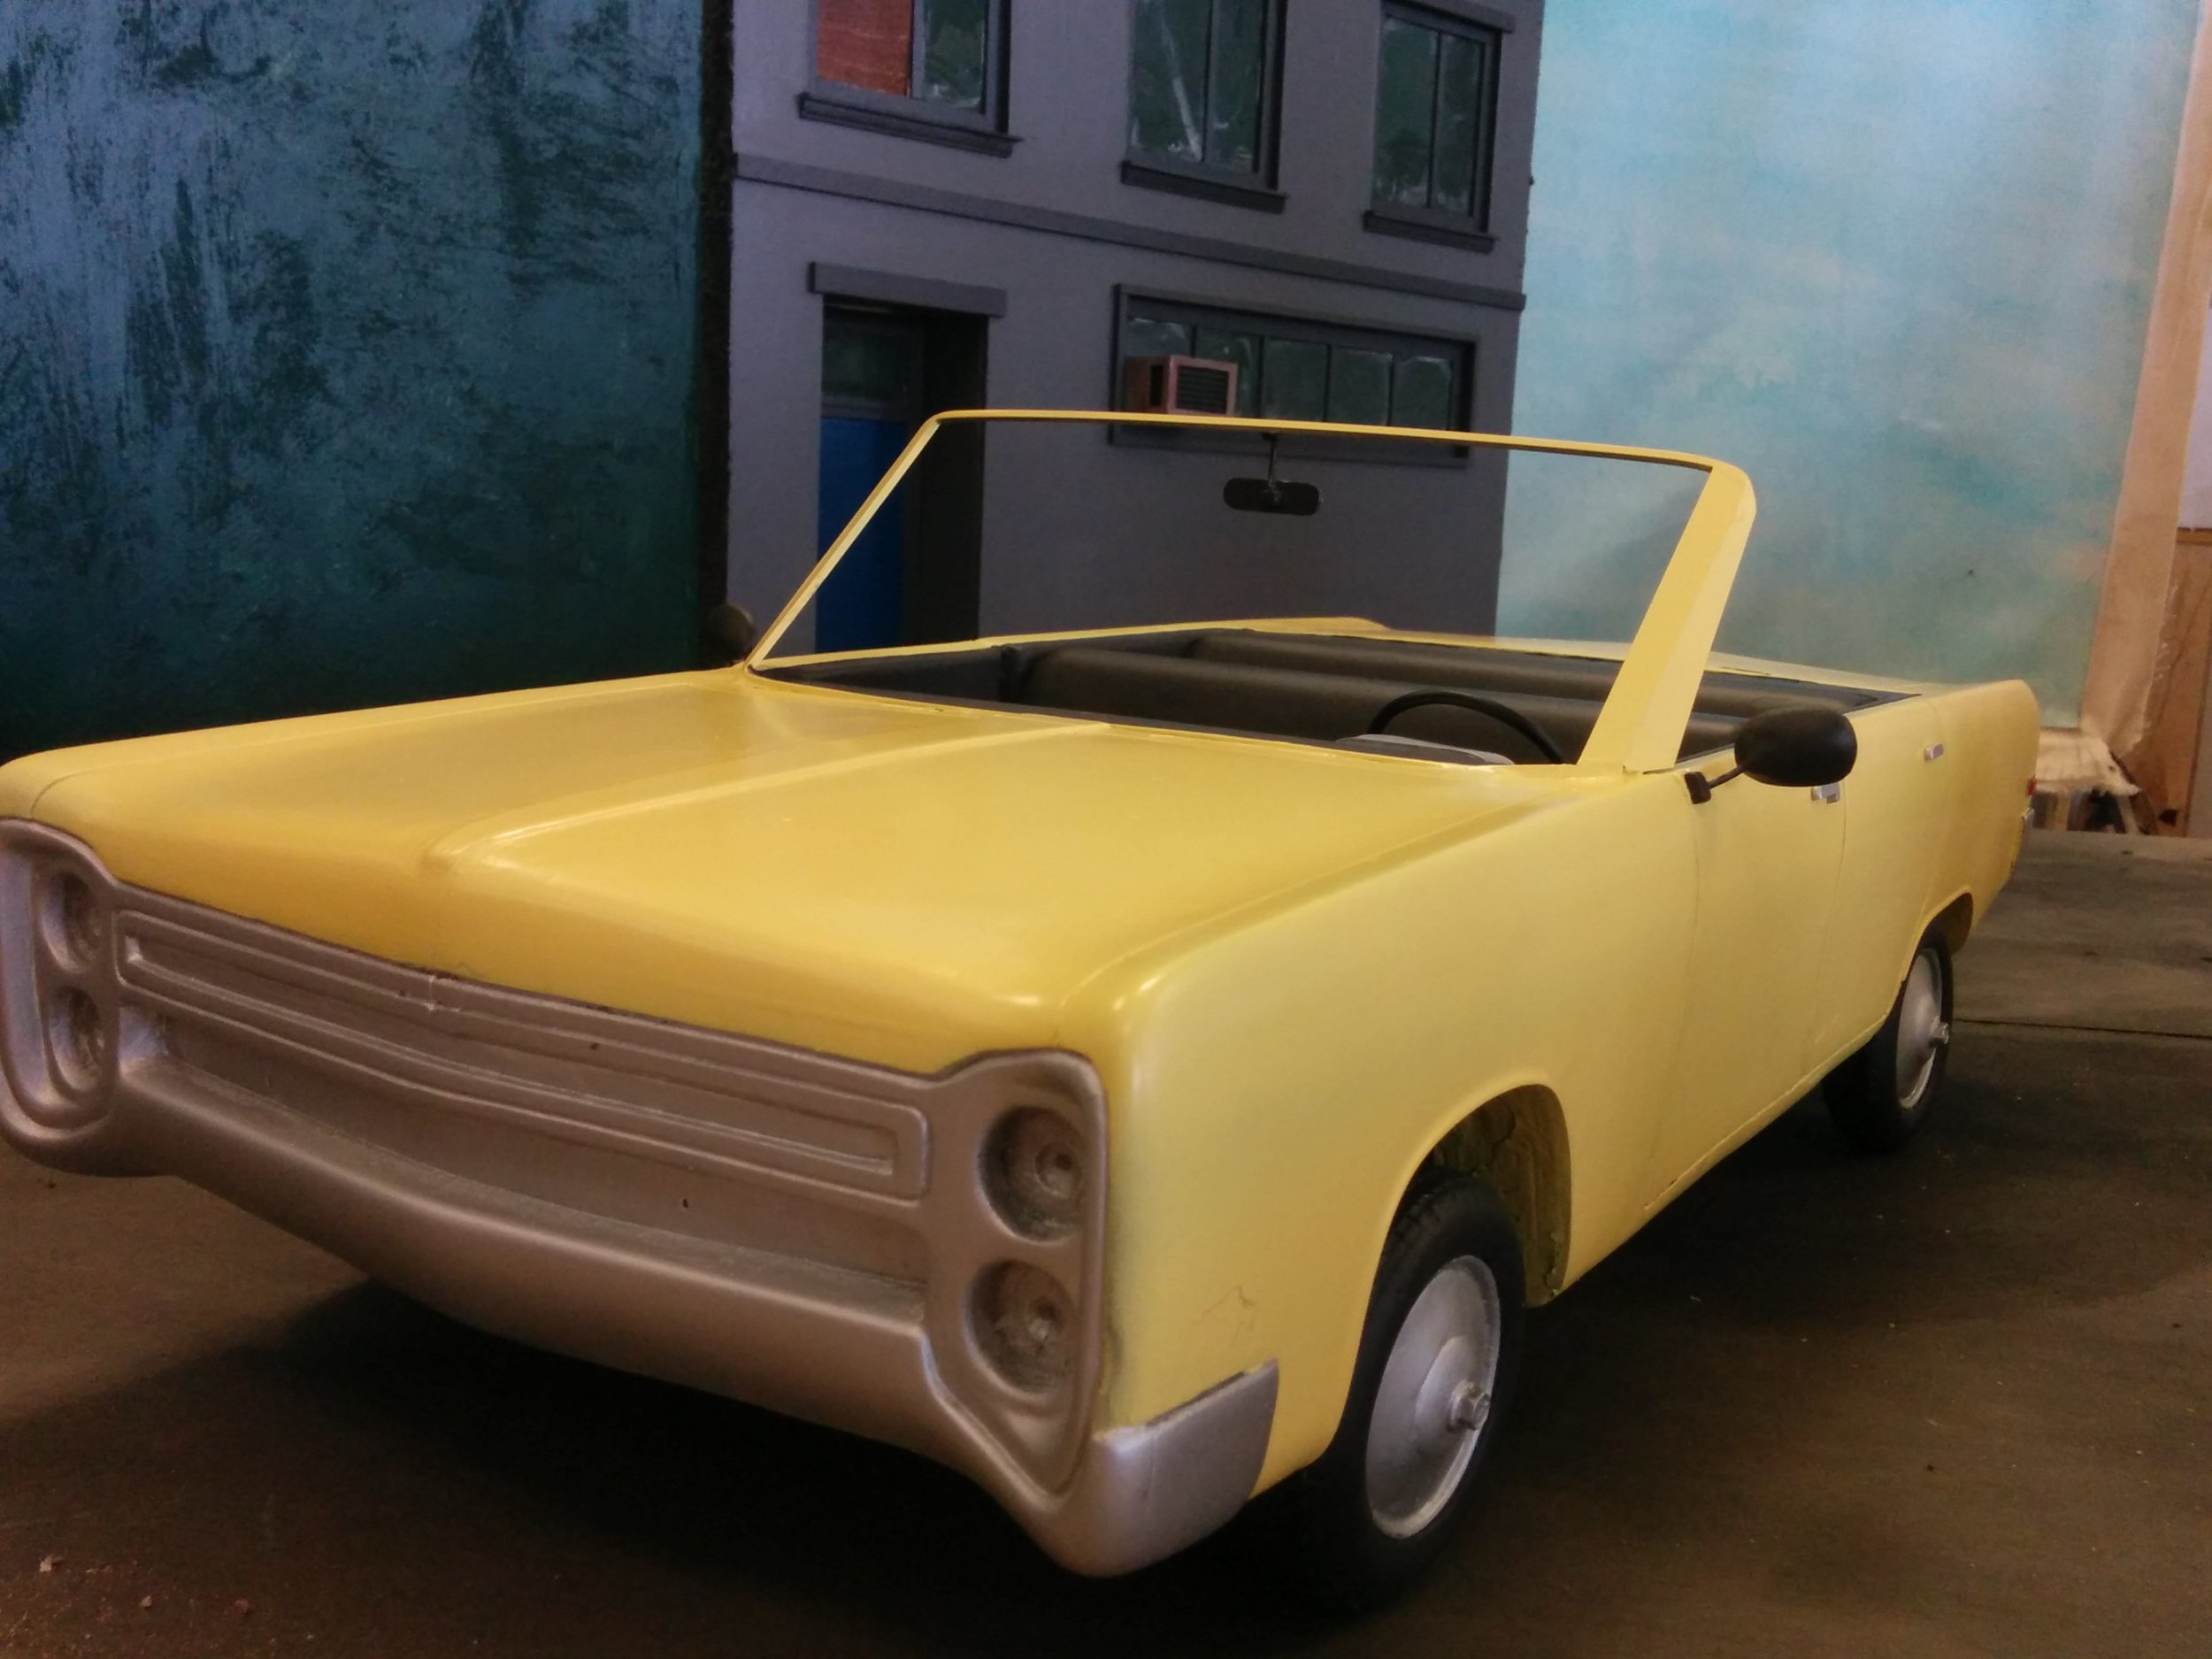 Basla foam model car. I am responsible for building the windshield, repairing the model, rigging the wheels with brass tubing and painting the prop.